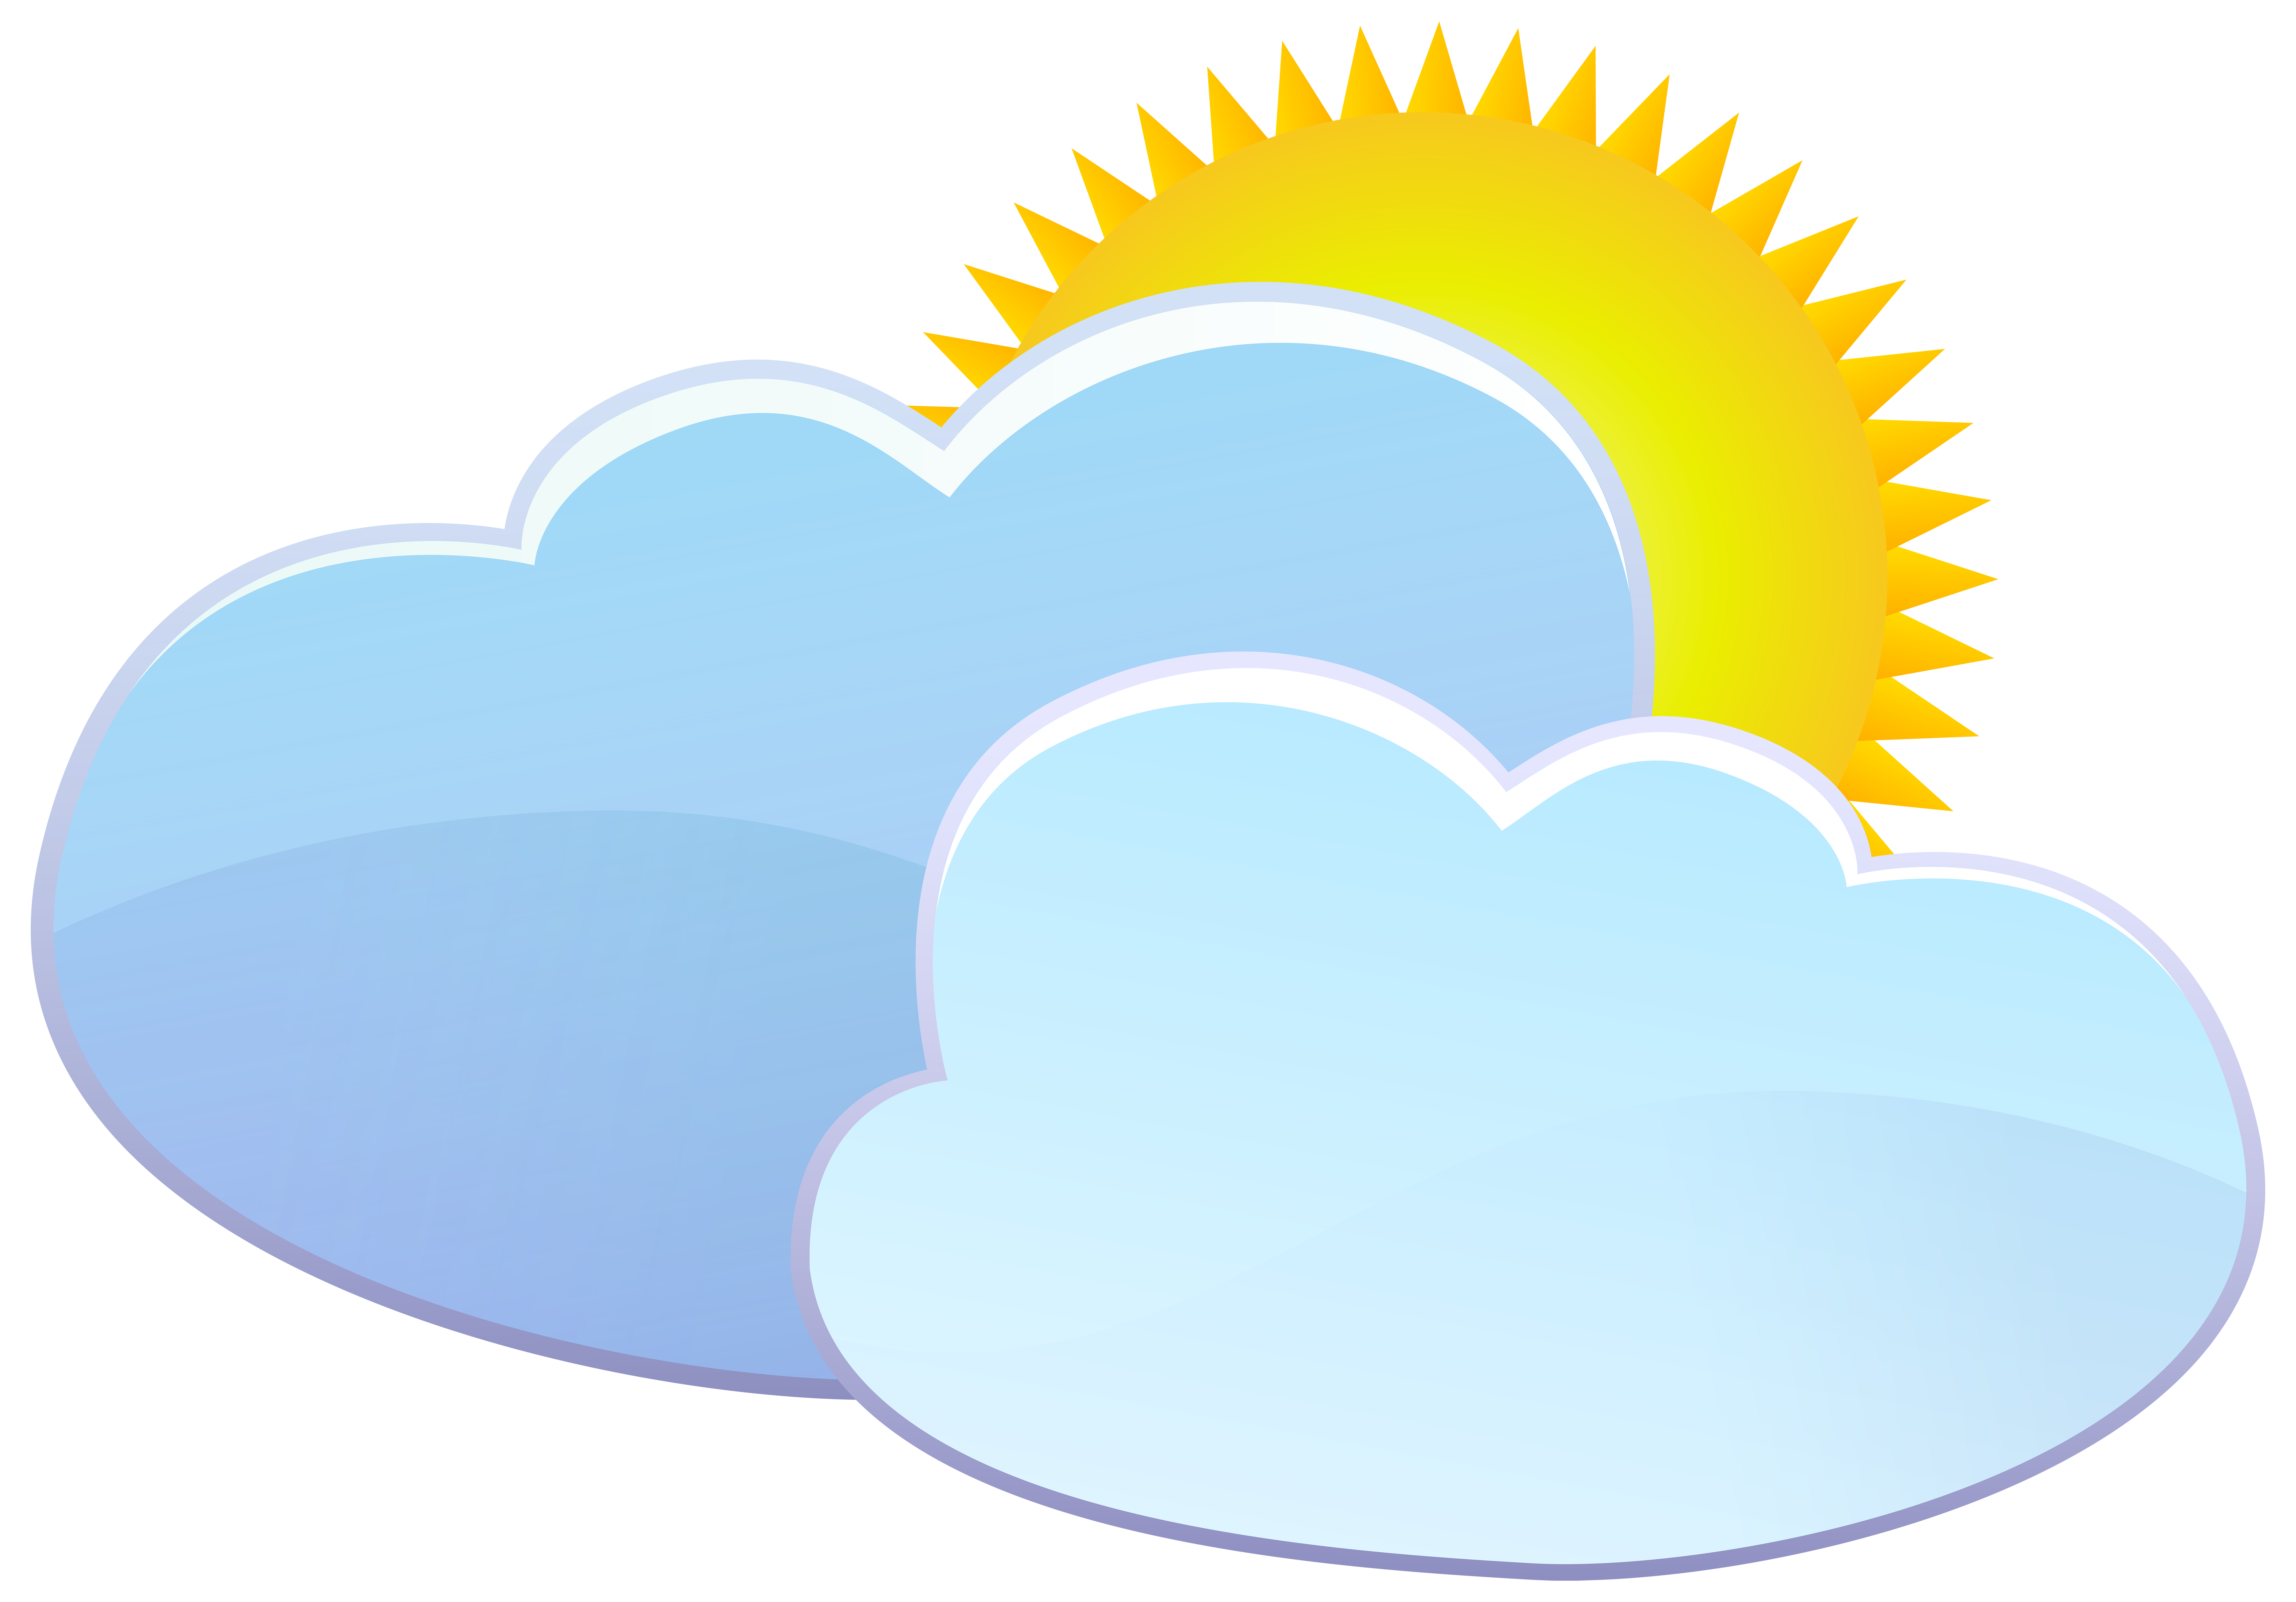 Sun weather clipart png free Clouds and Sun Weather Icon PNG Clip Art - Best WEB Clipart png free